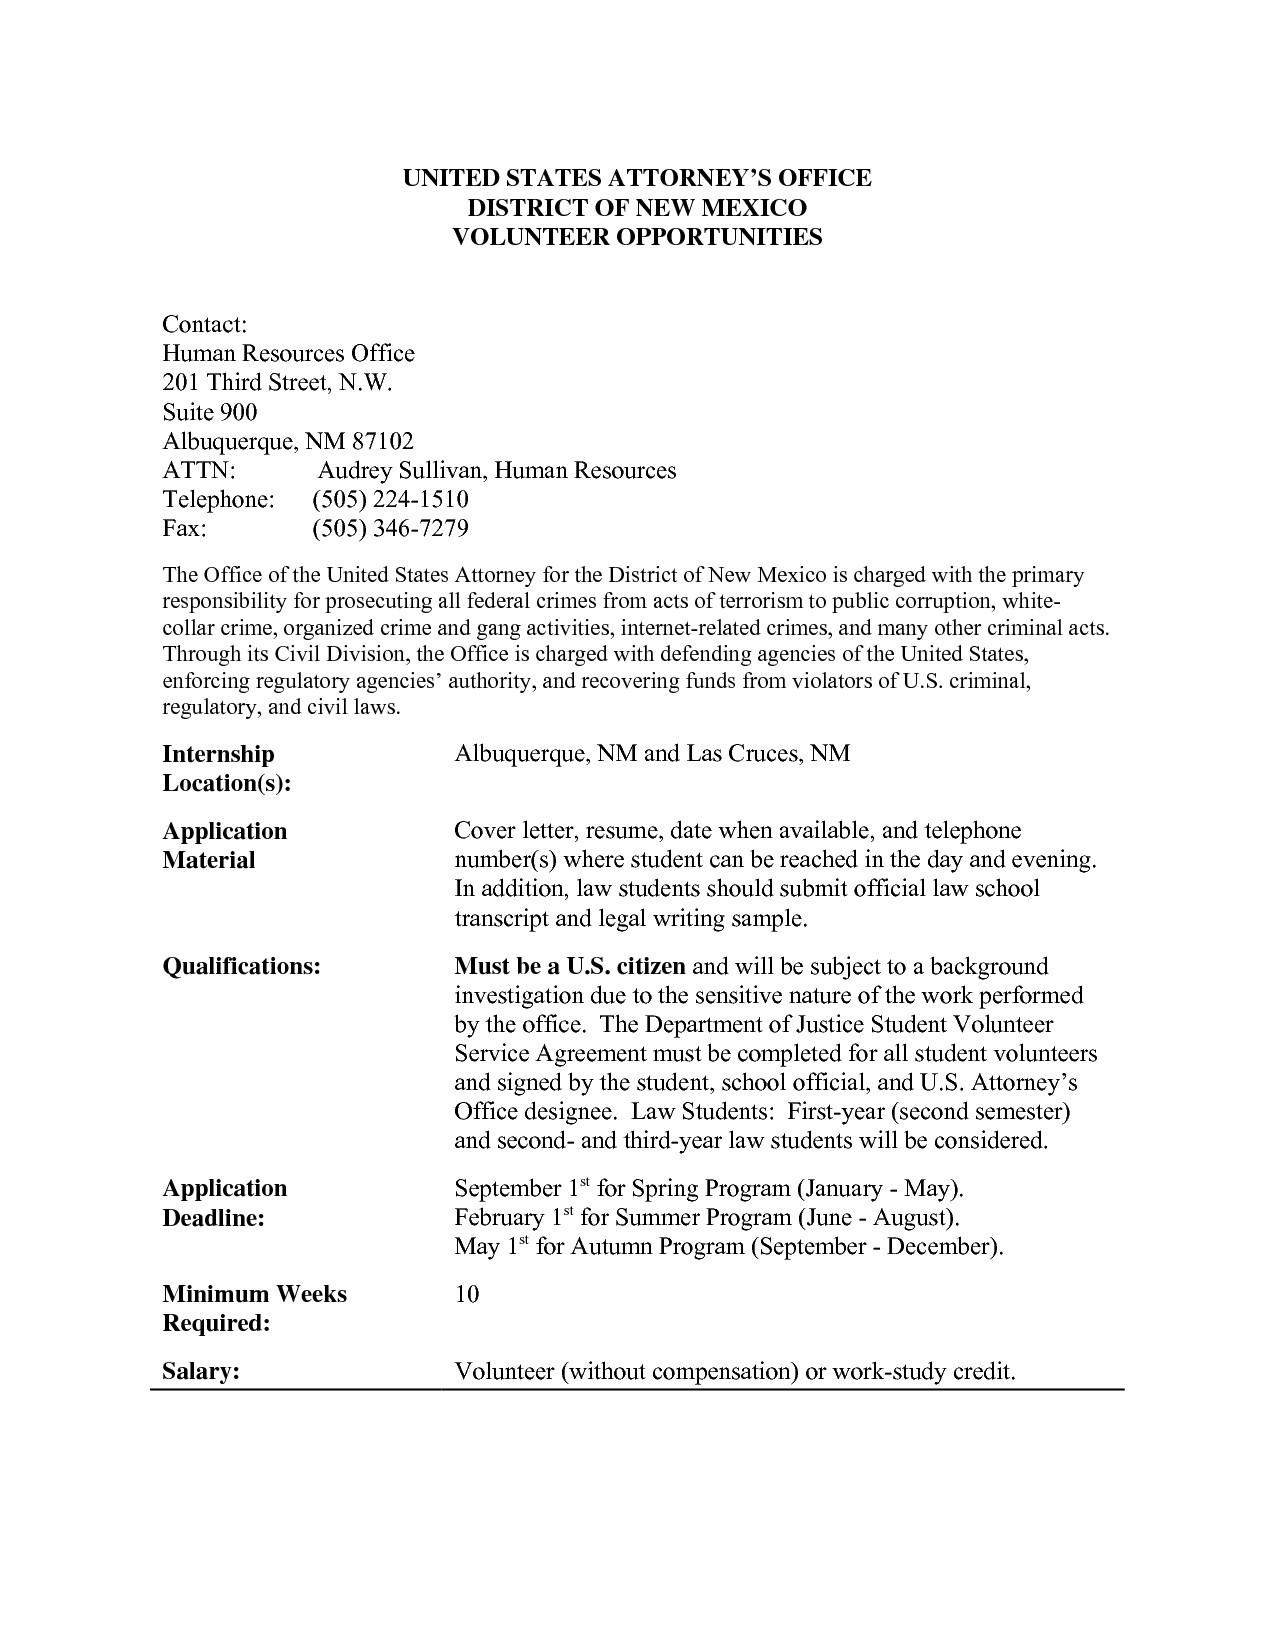 Picture Of A Resume - Resume format for Mba Save Unique Sample College Application Resume